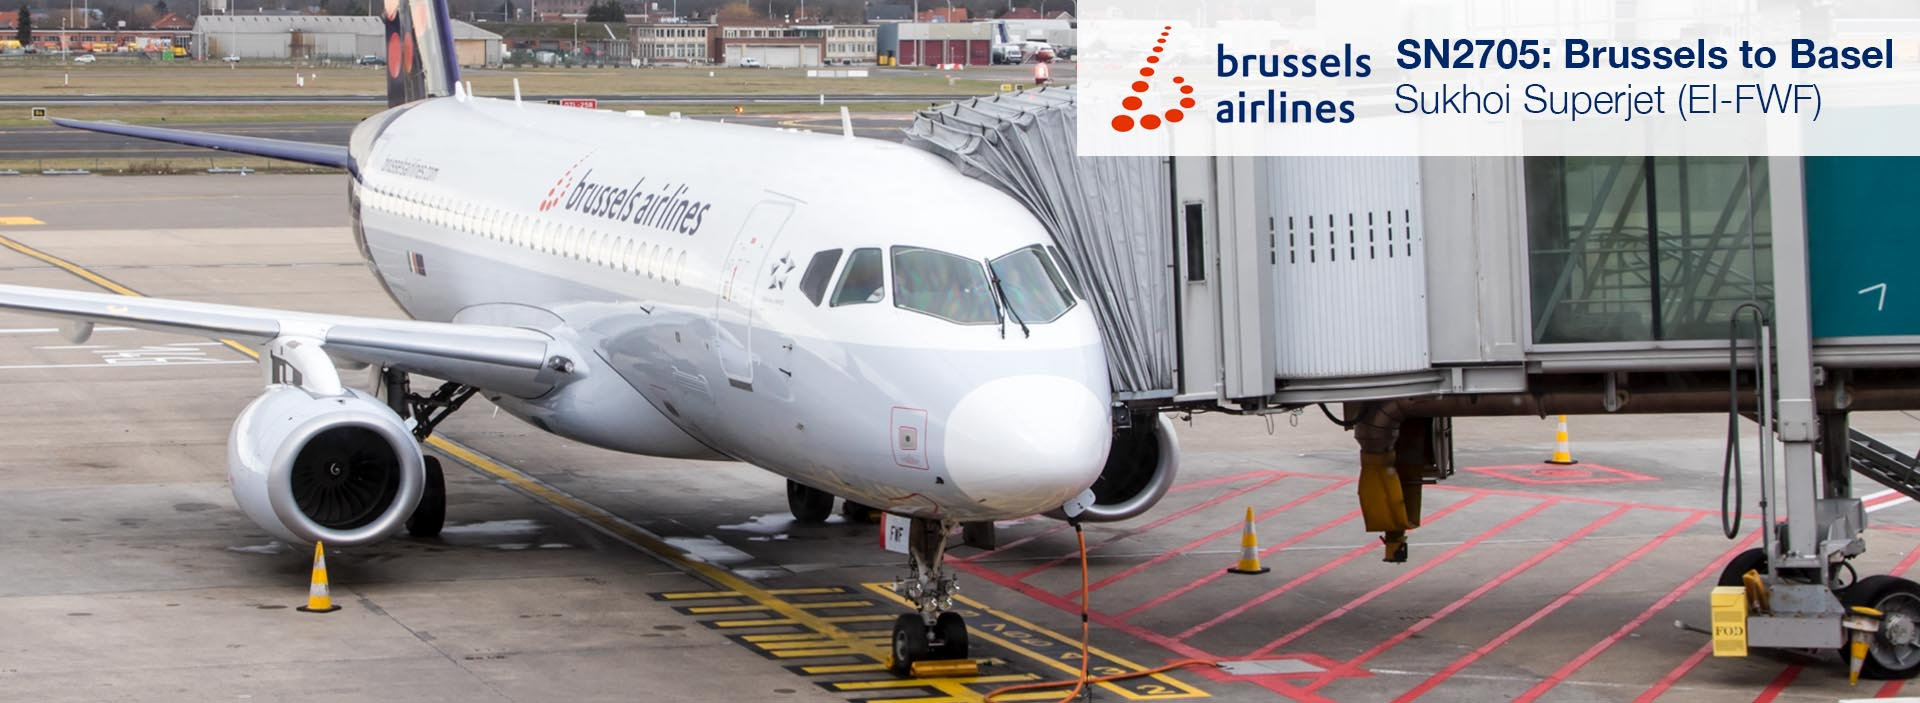 Review: Brussels Airlines (CityJet) Sukhoi Superjet from Brussels to Basel